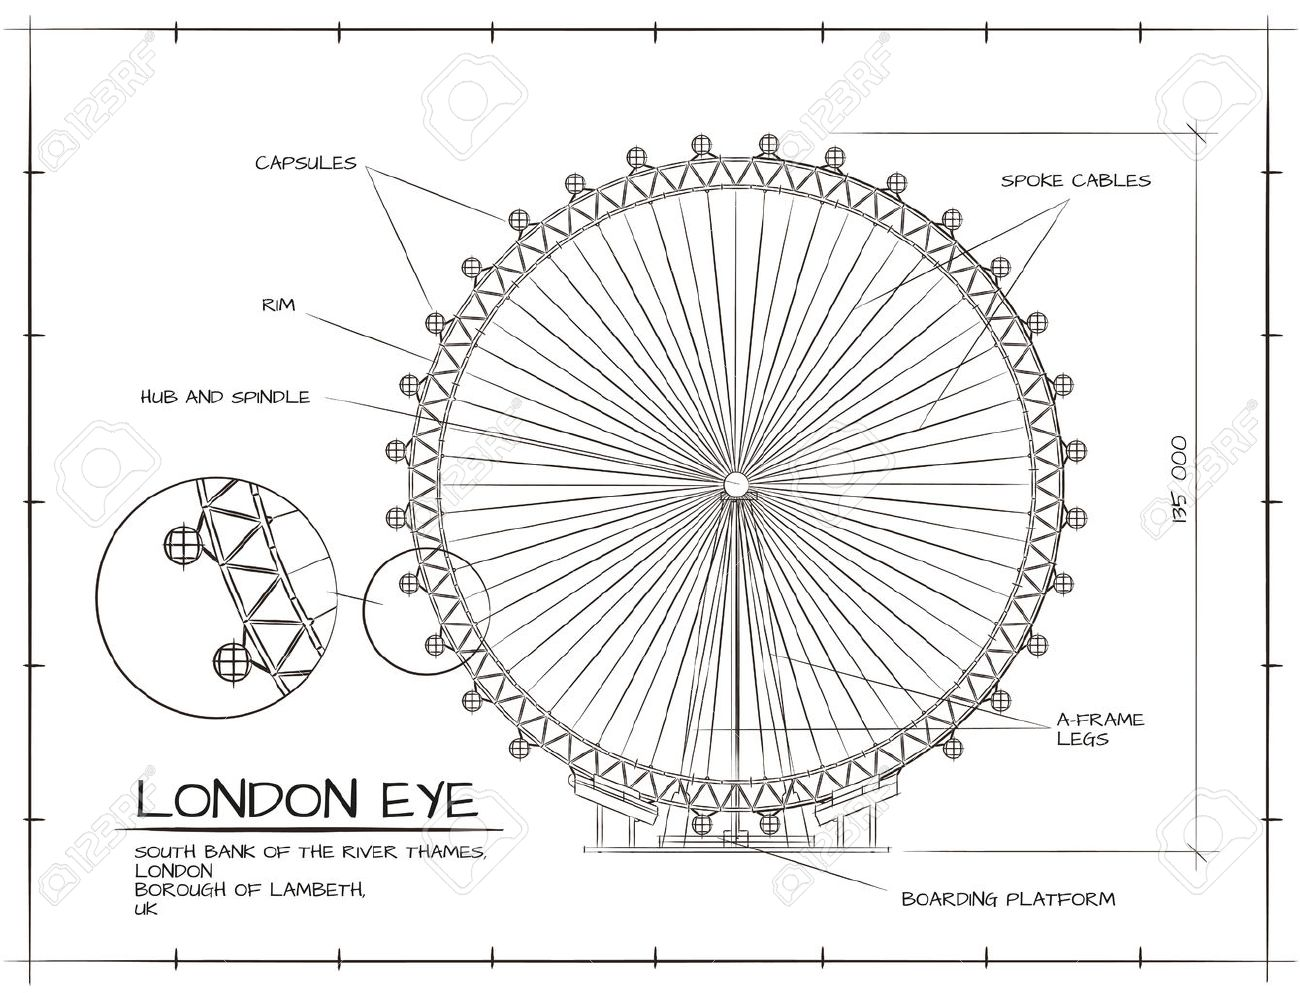 Architectural Technical Drawing Of London Eye Millennium Wheel Stock Vector    53103253